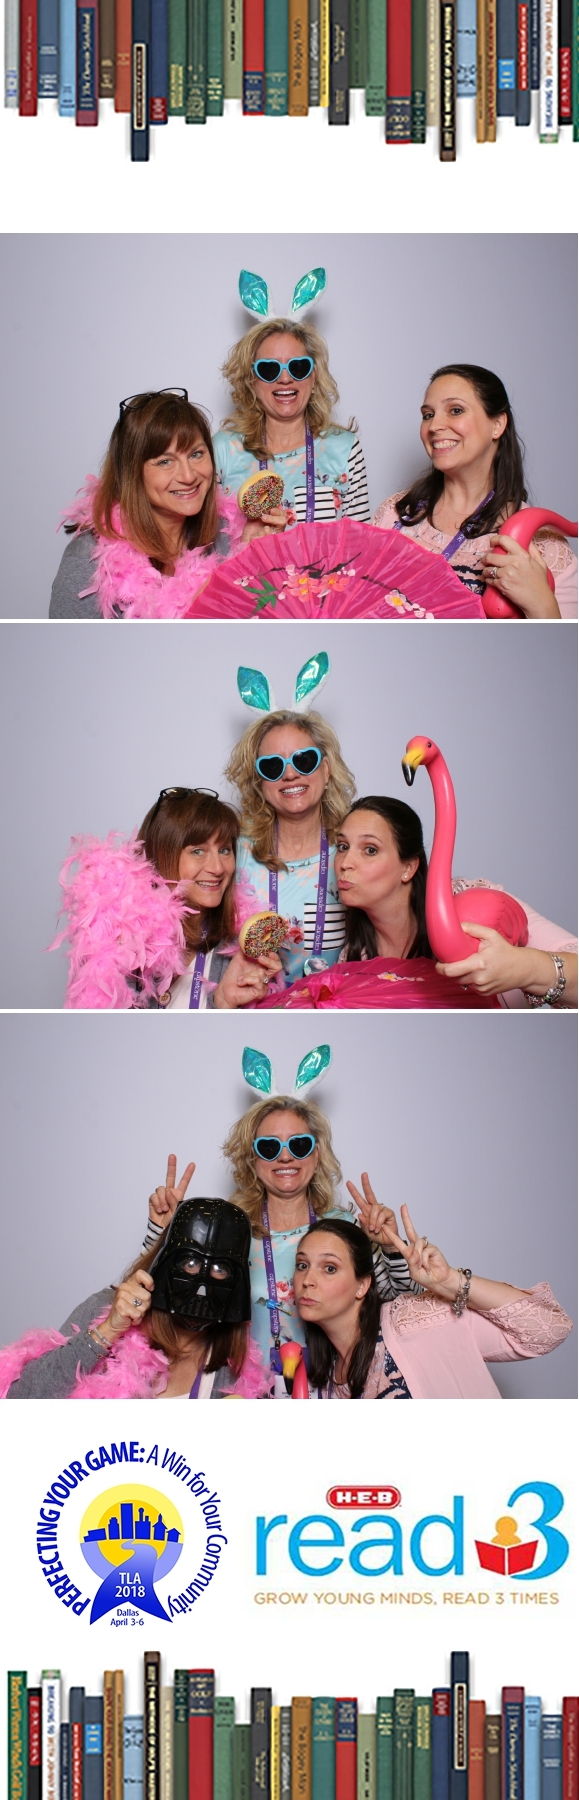 dallas convention center photo booth